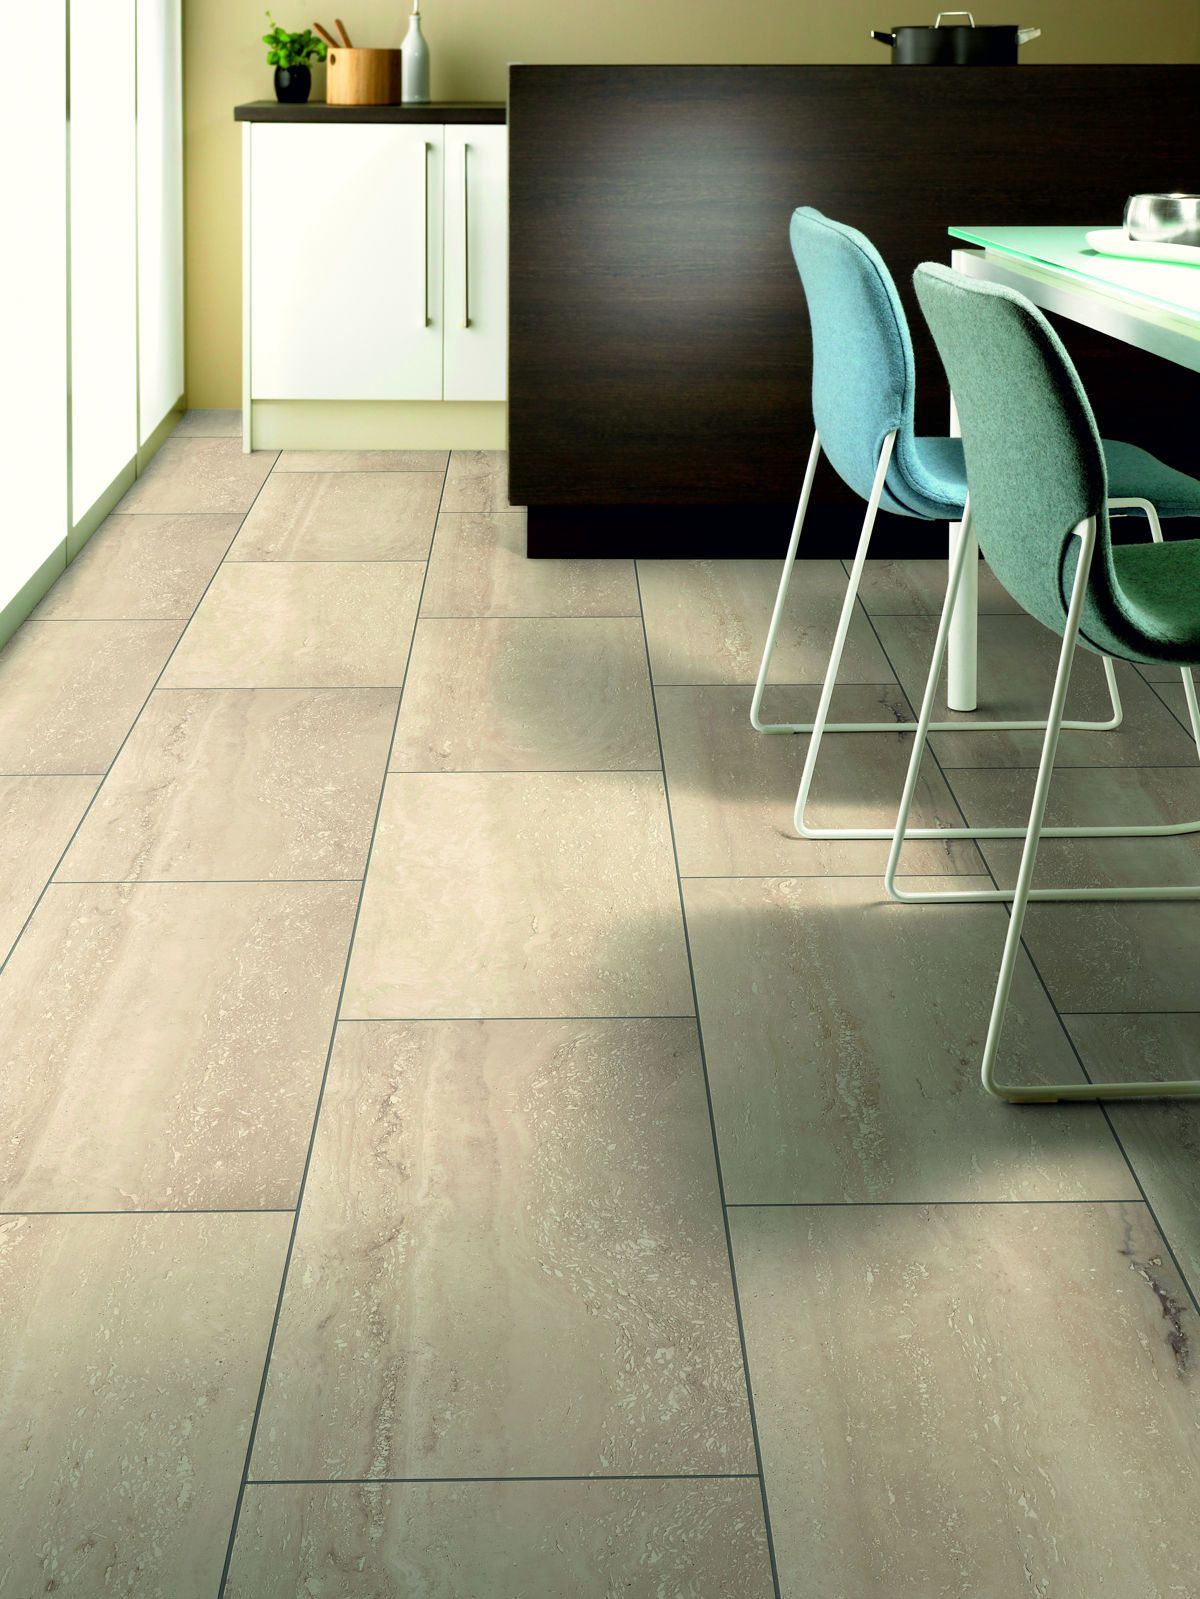 laminate floor tiles at b and q